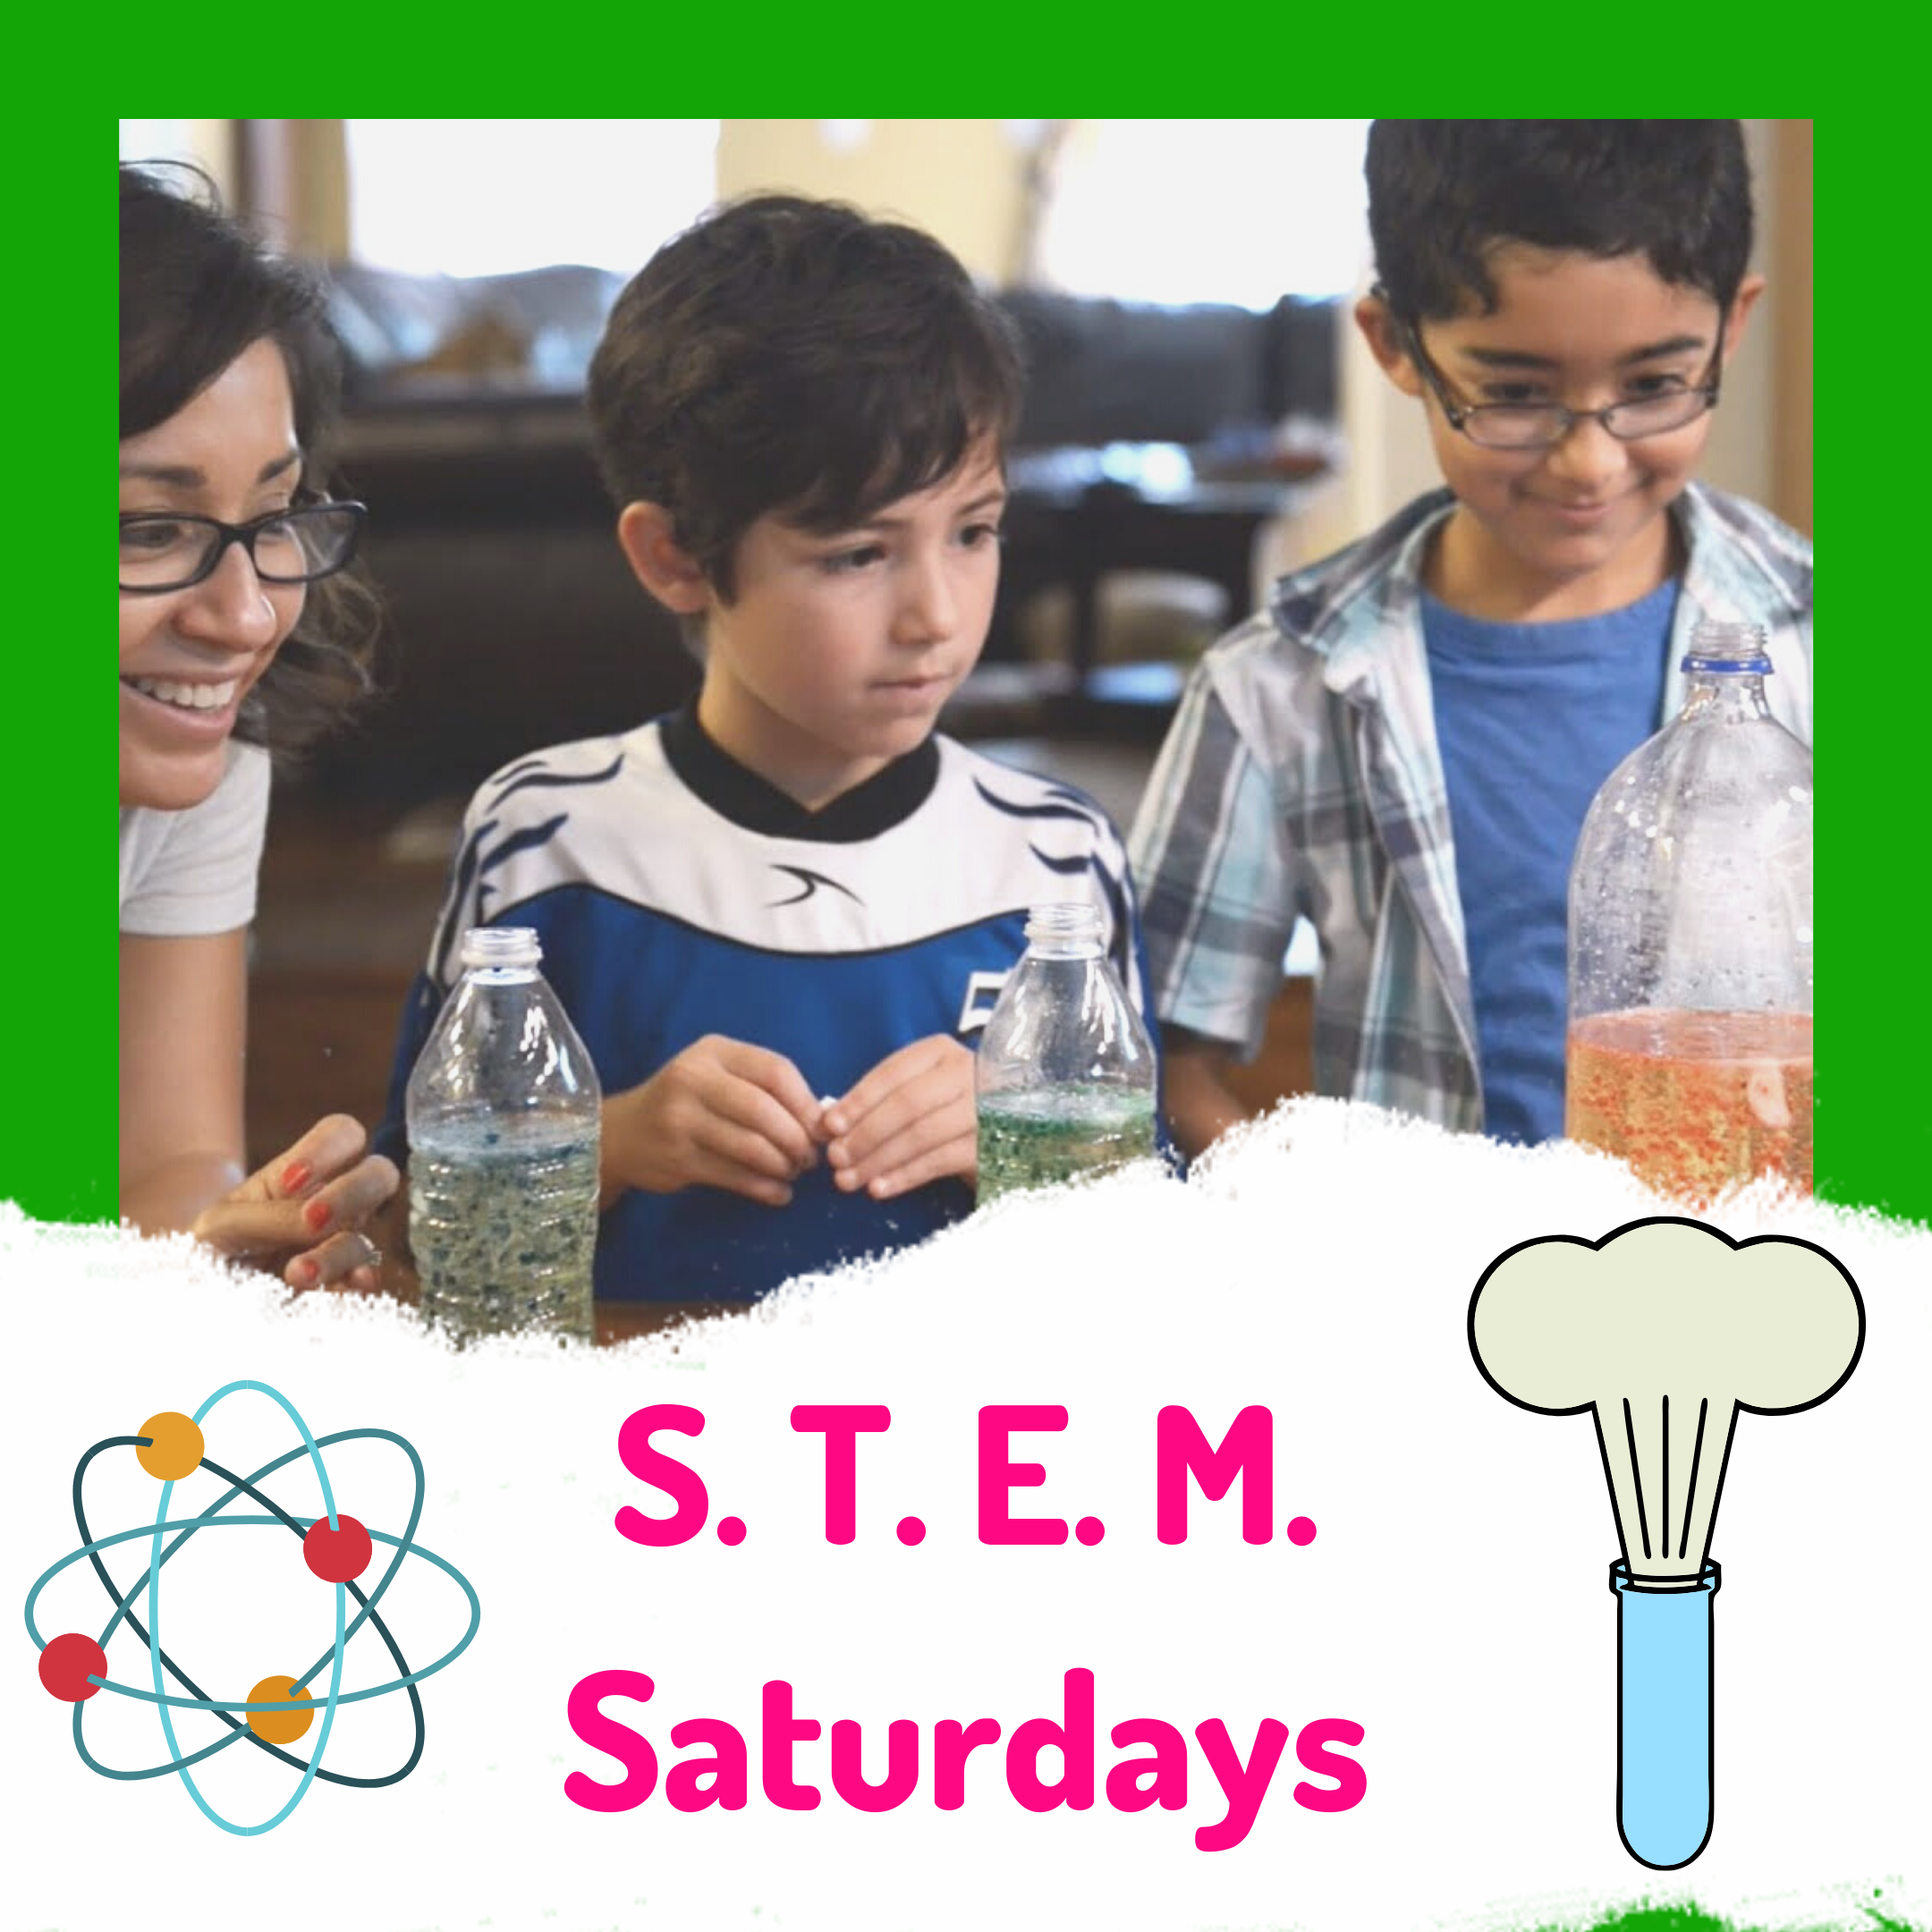 S.T.E.M. Saturday (Children's Program)